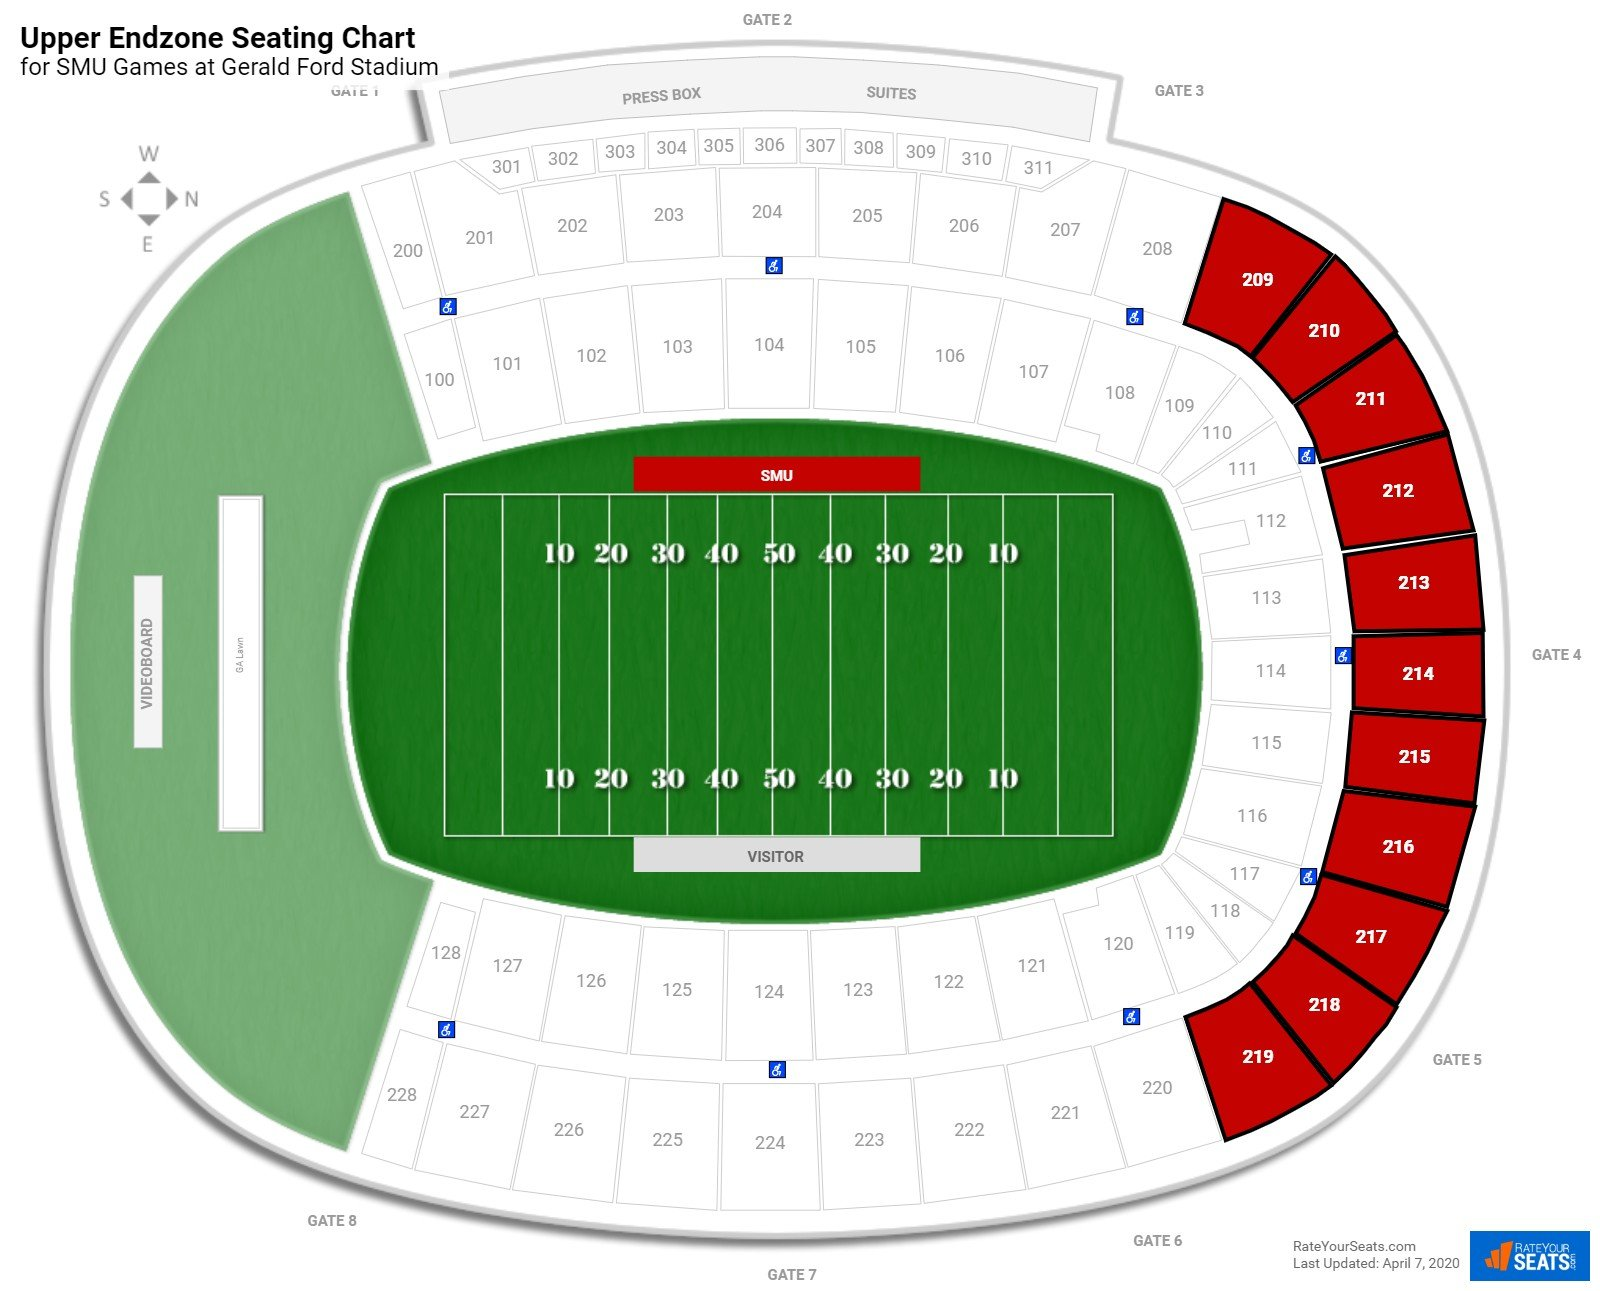 Gerald Ford Stadium Upper Endzone seating chart